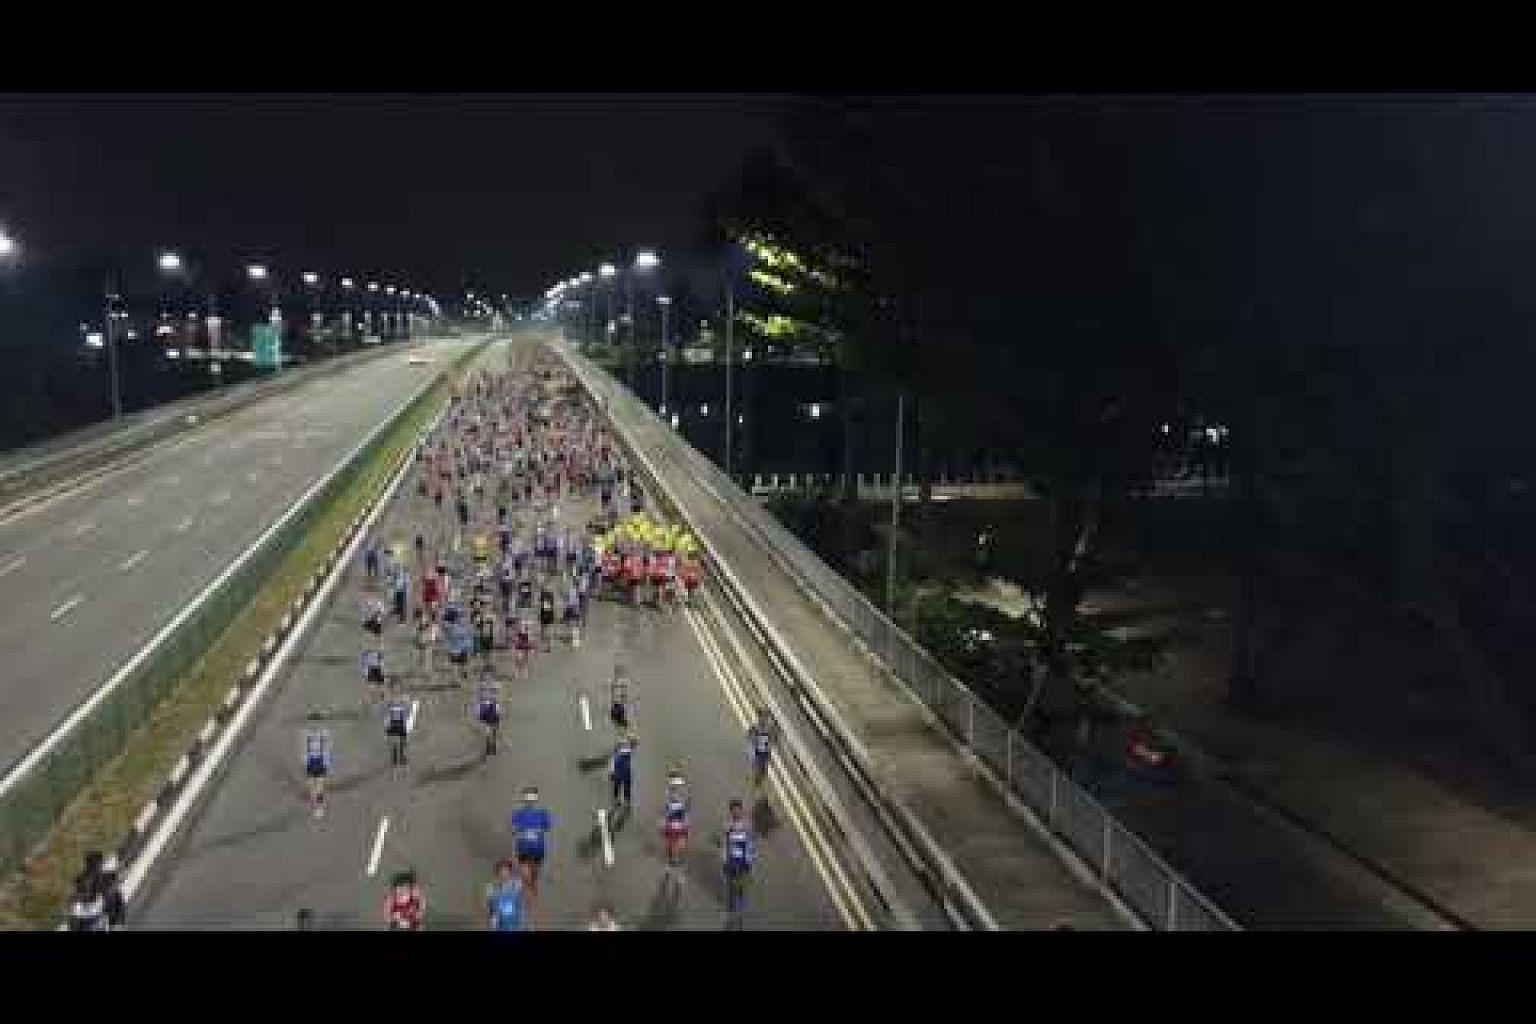 ST Run 2019: Participants of 18.45km race making their way along Nicoll Highway